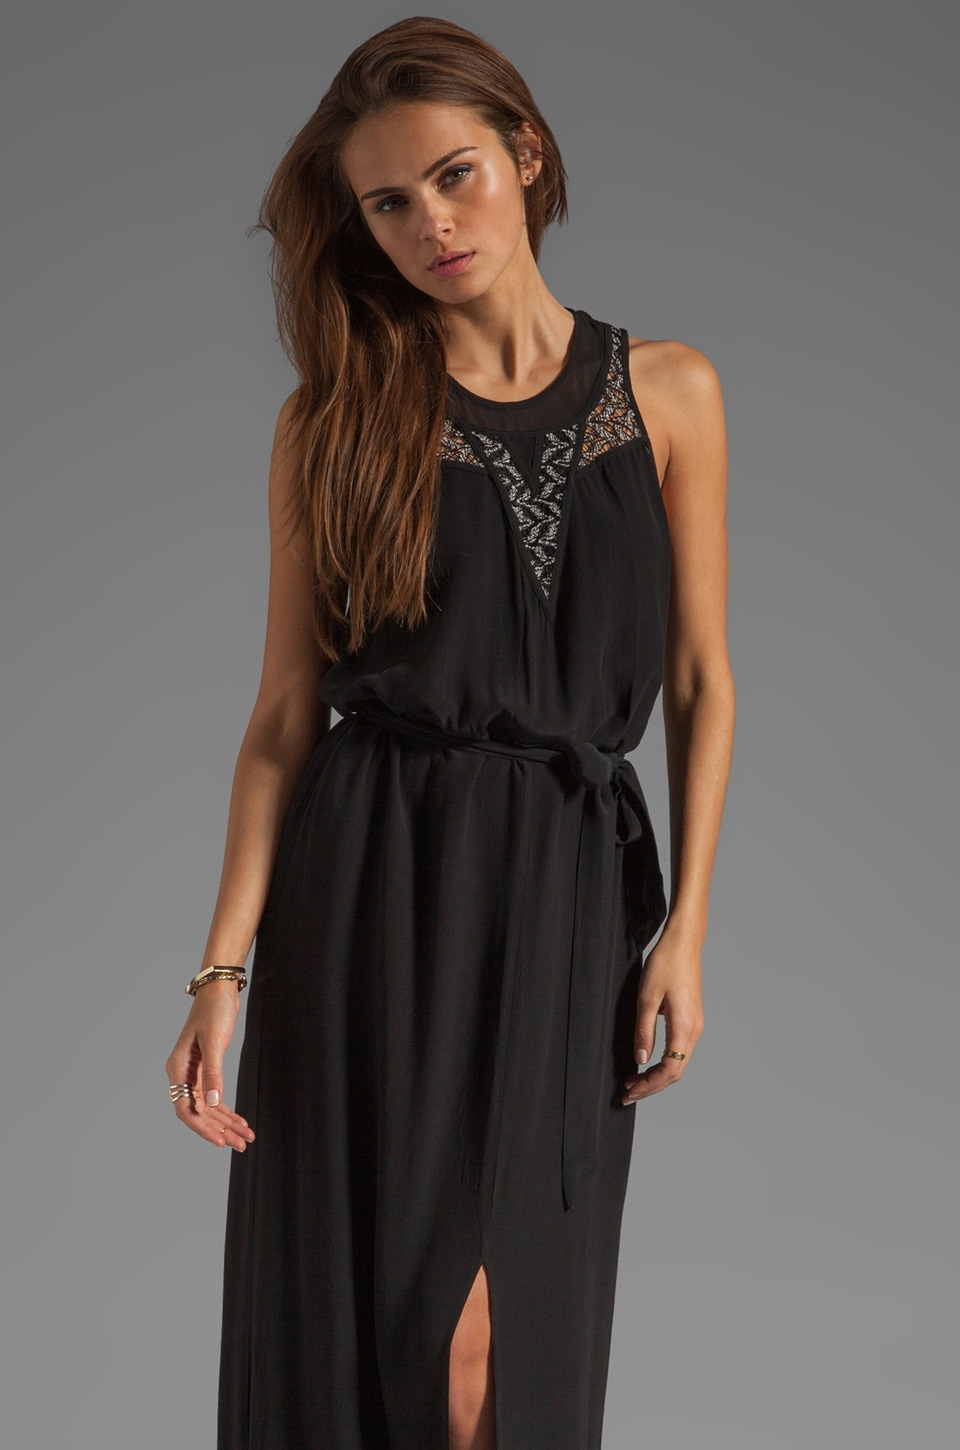 Wish Blade Maxi Dress in Black